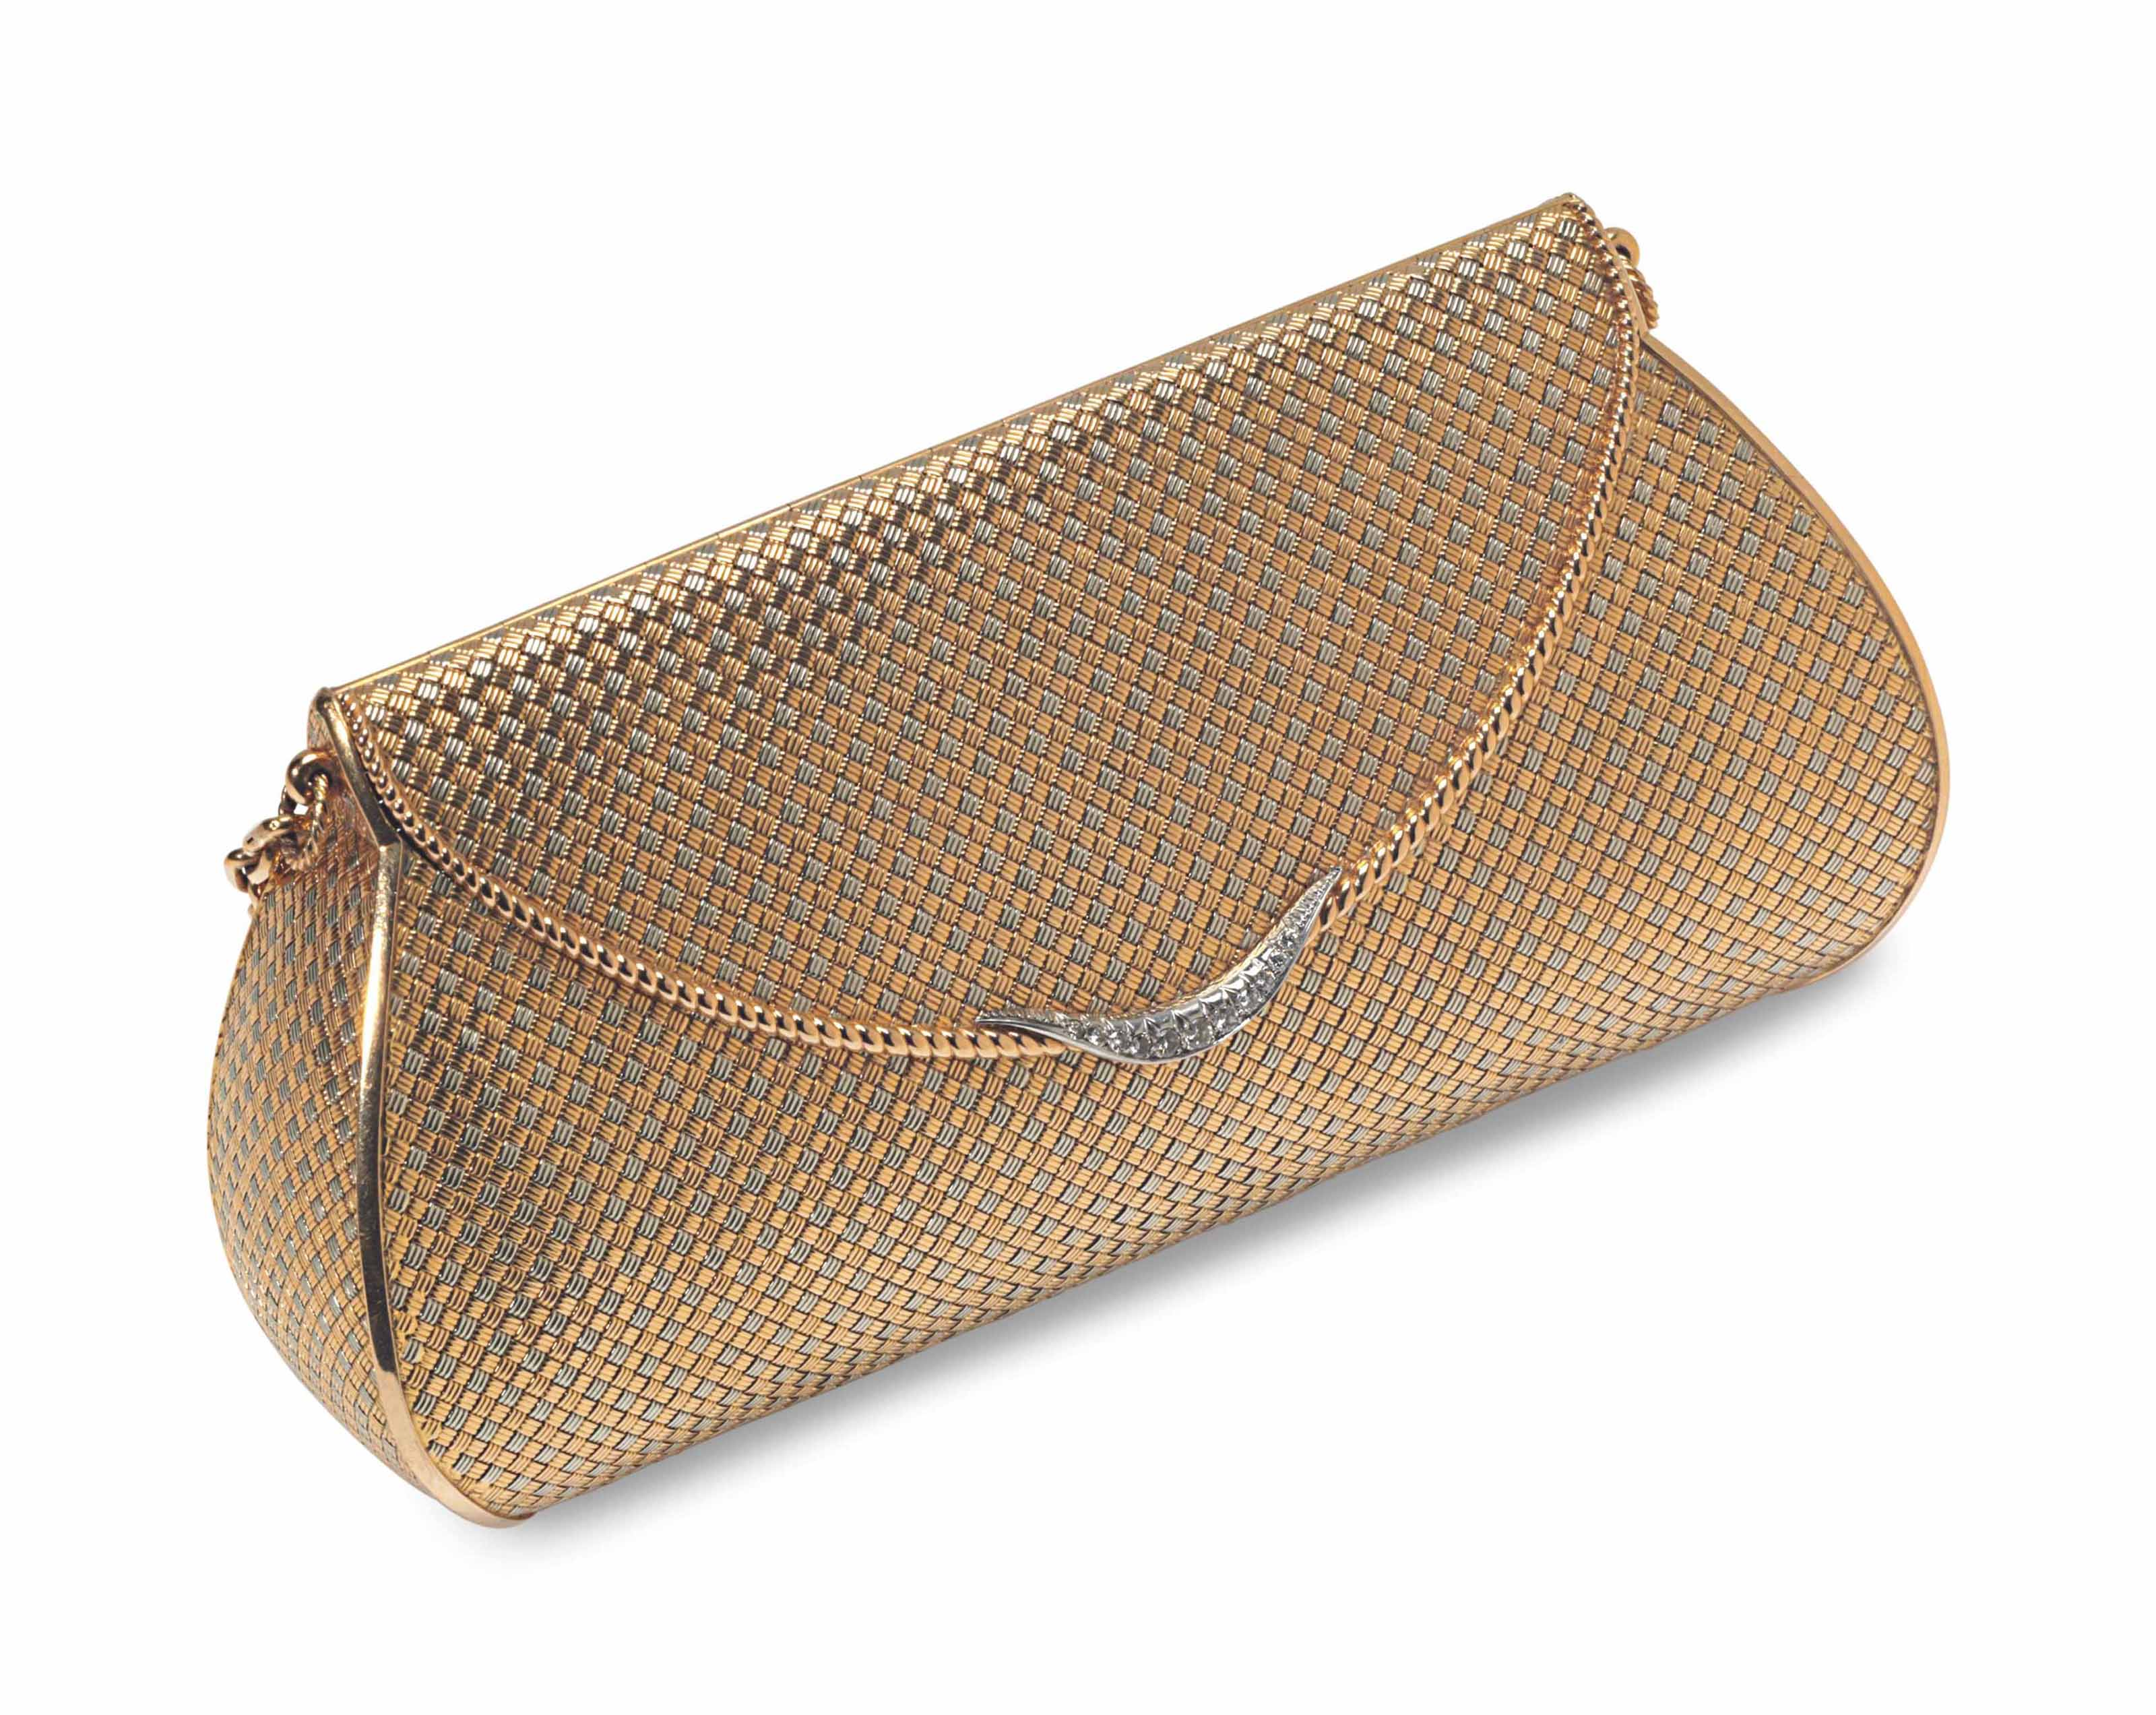 A GOLD AND DIAMOND EVENING BAG, BY LAYKIN ET CIE